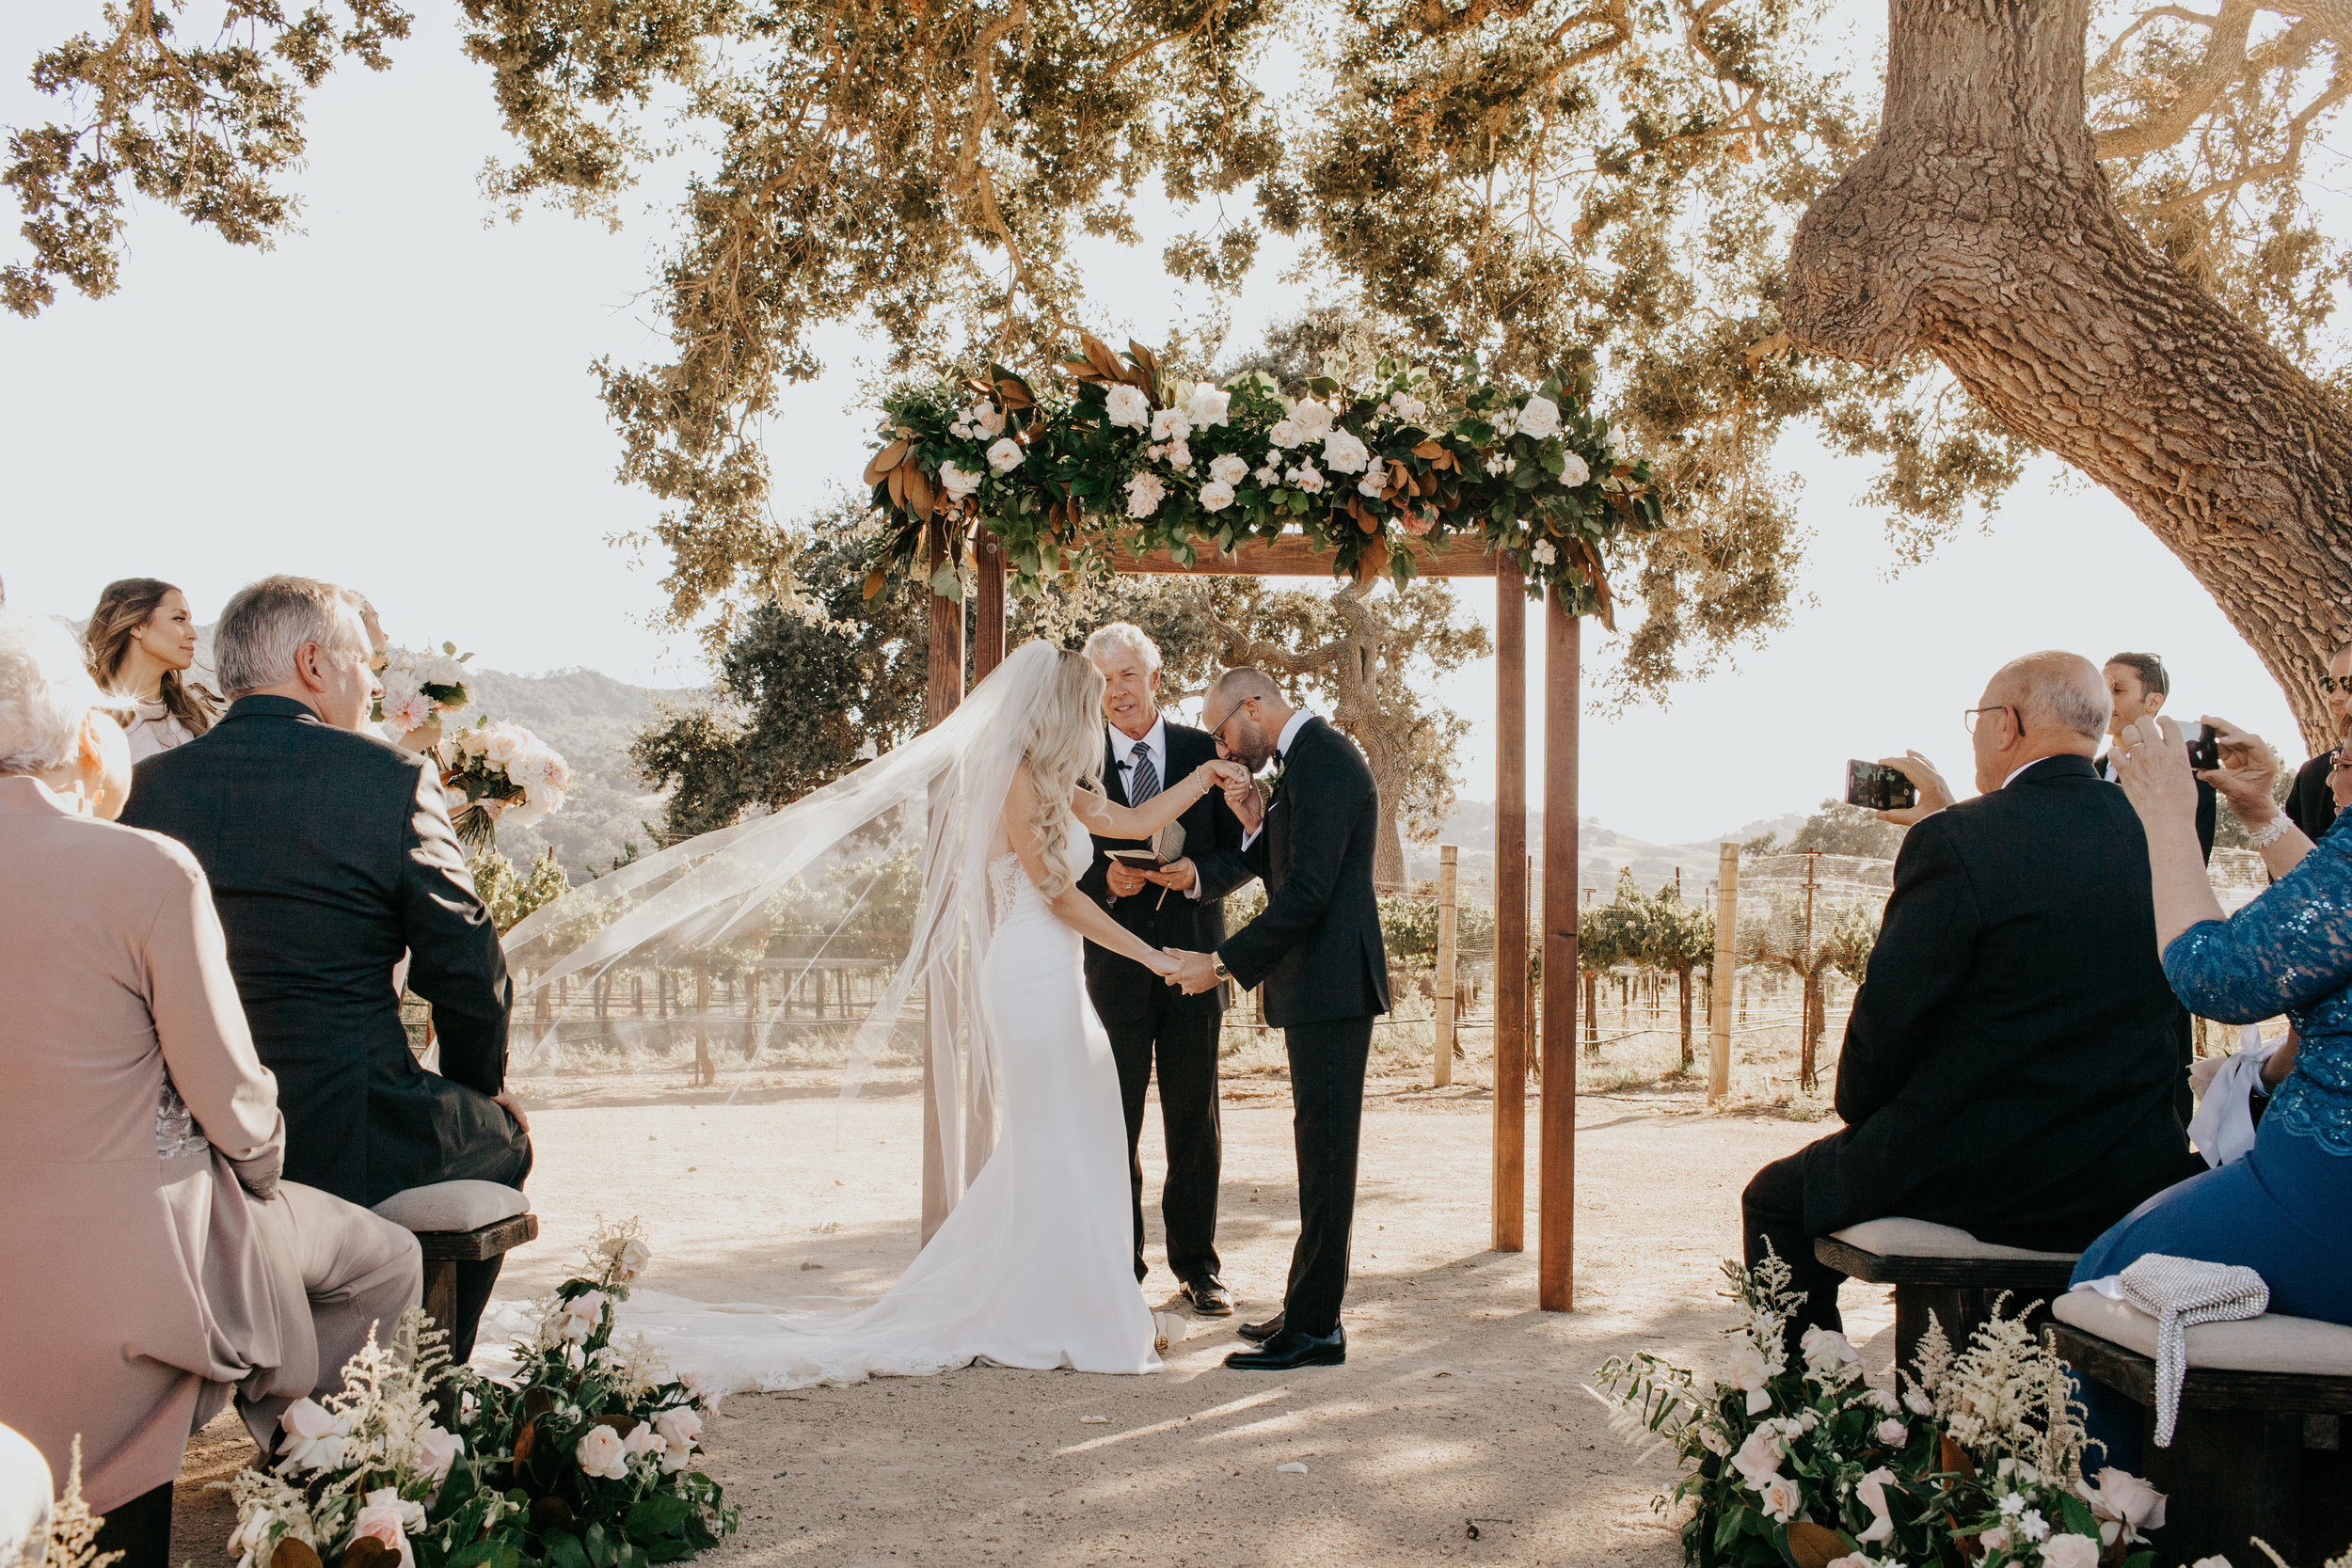 www.santabarbarawedding.com | Alexandria Monette Photography | Sunstone Villa | Soleil Events | Anna le Pley Taylor Flowers | Ocdamia Strings | Bride and Groom at the Ceremony